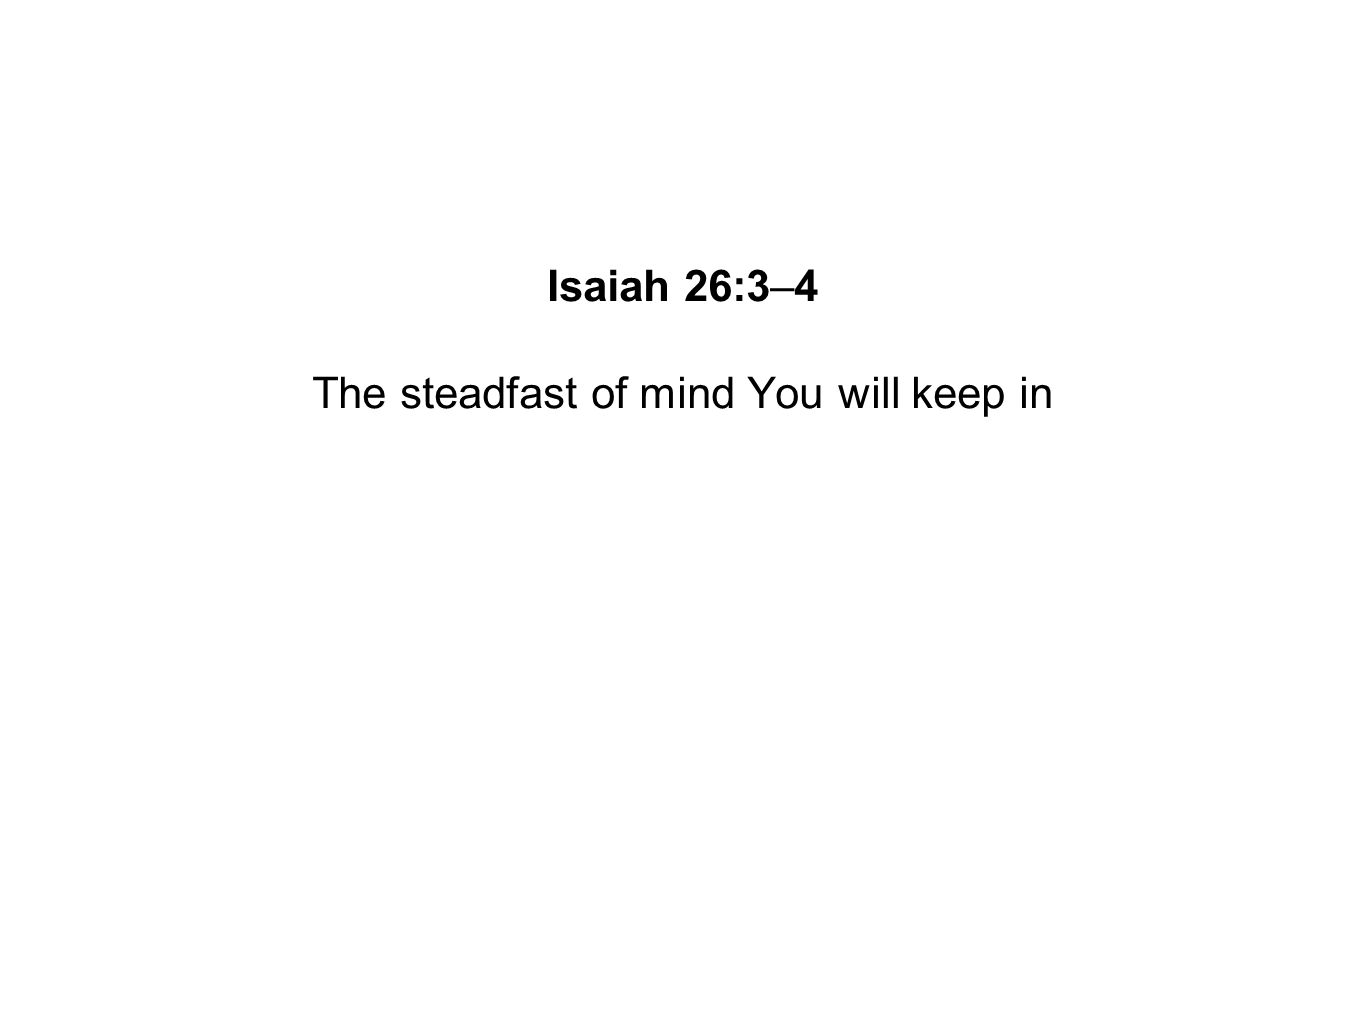 The steadfast of mind You will keep in